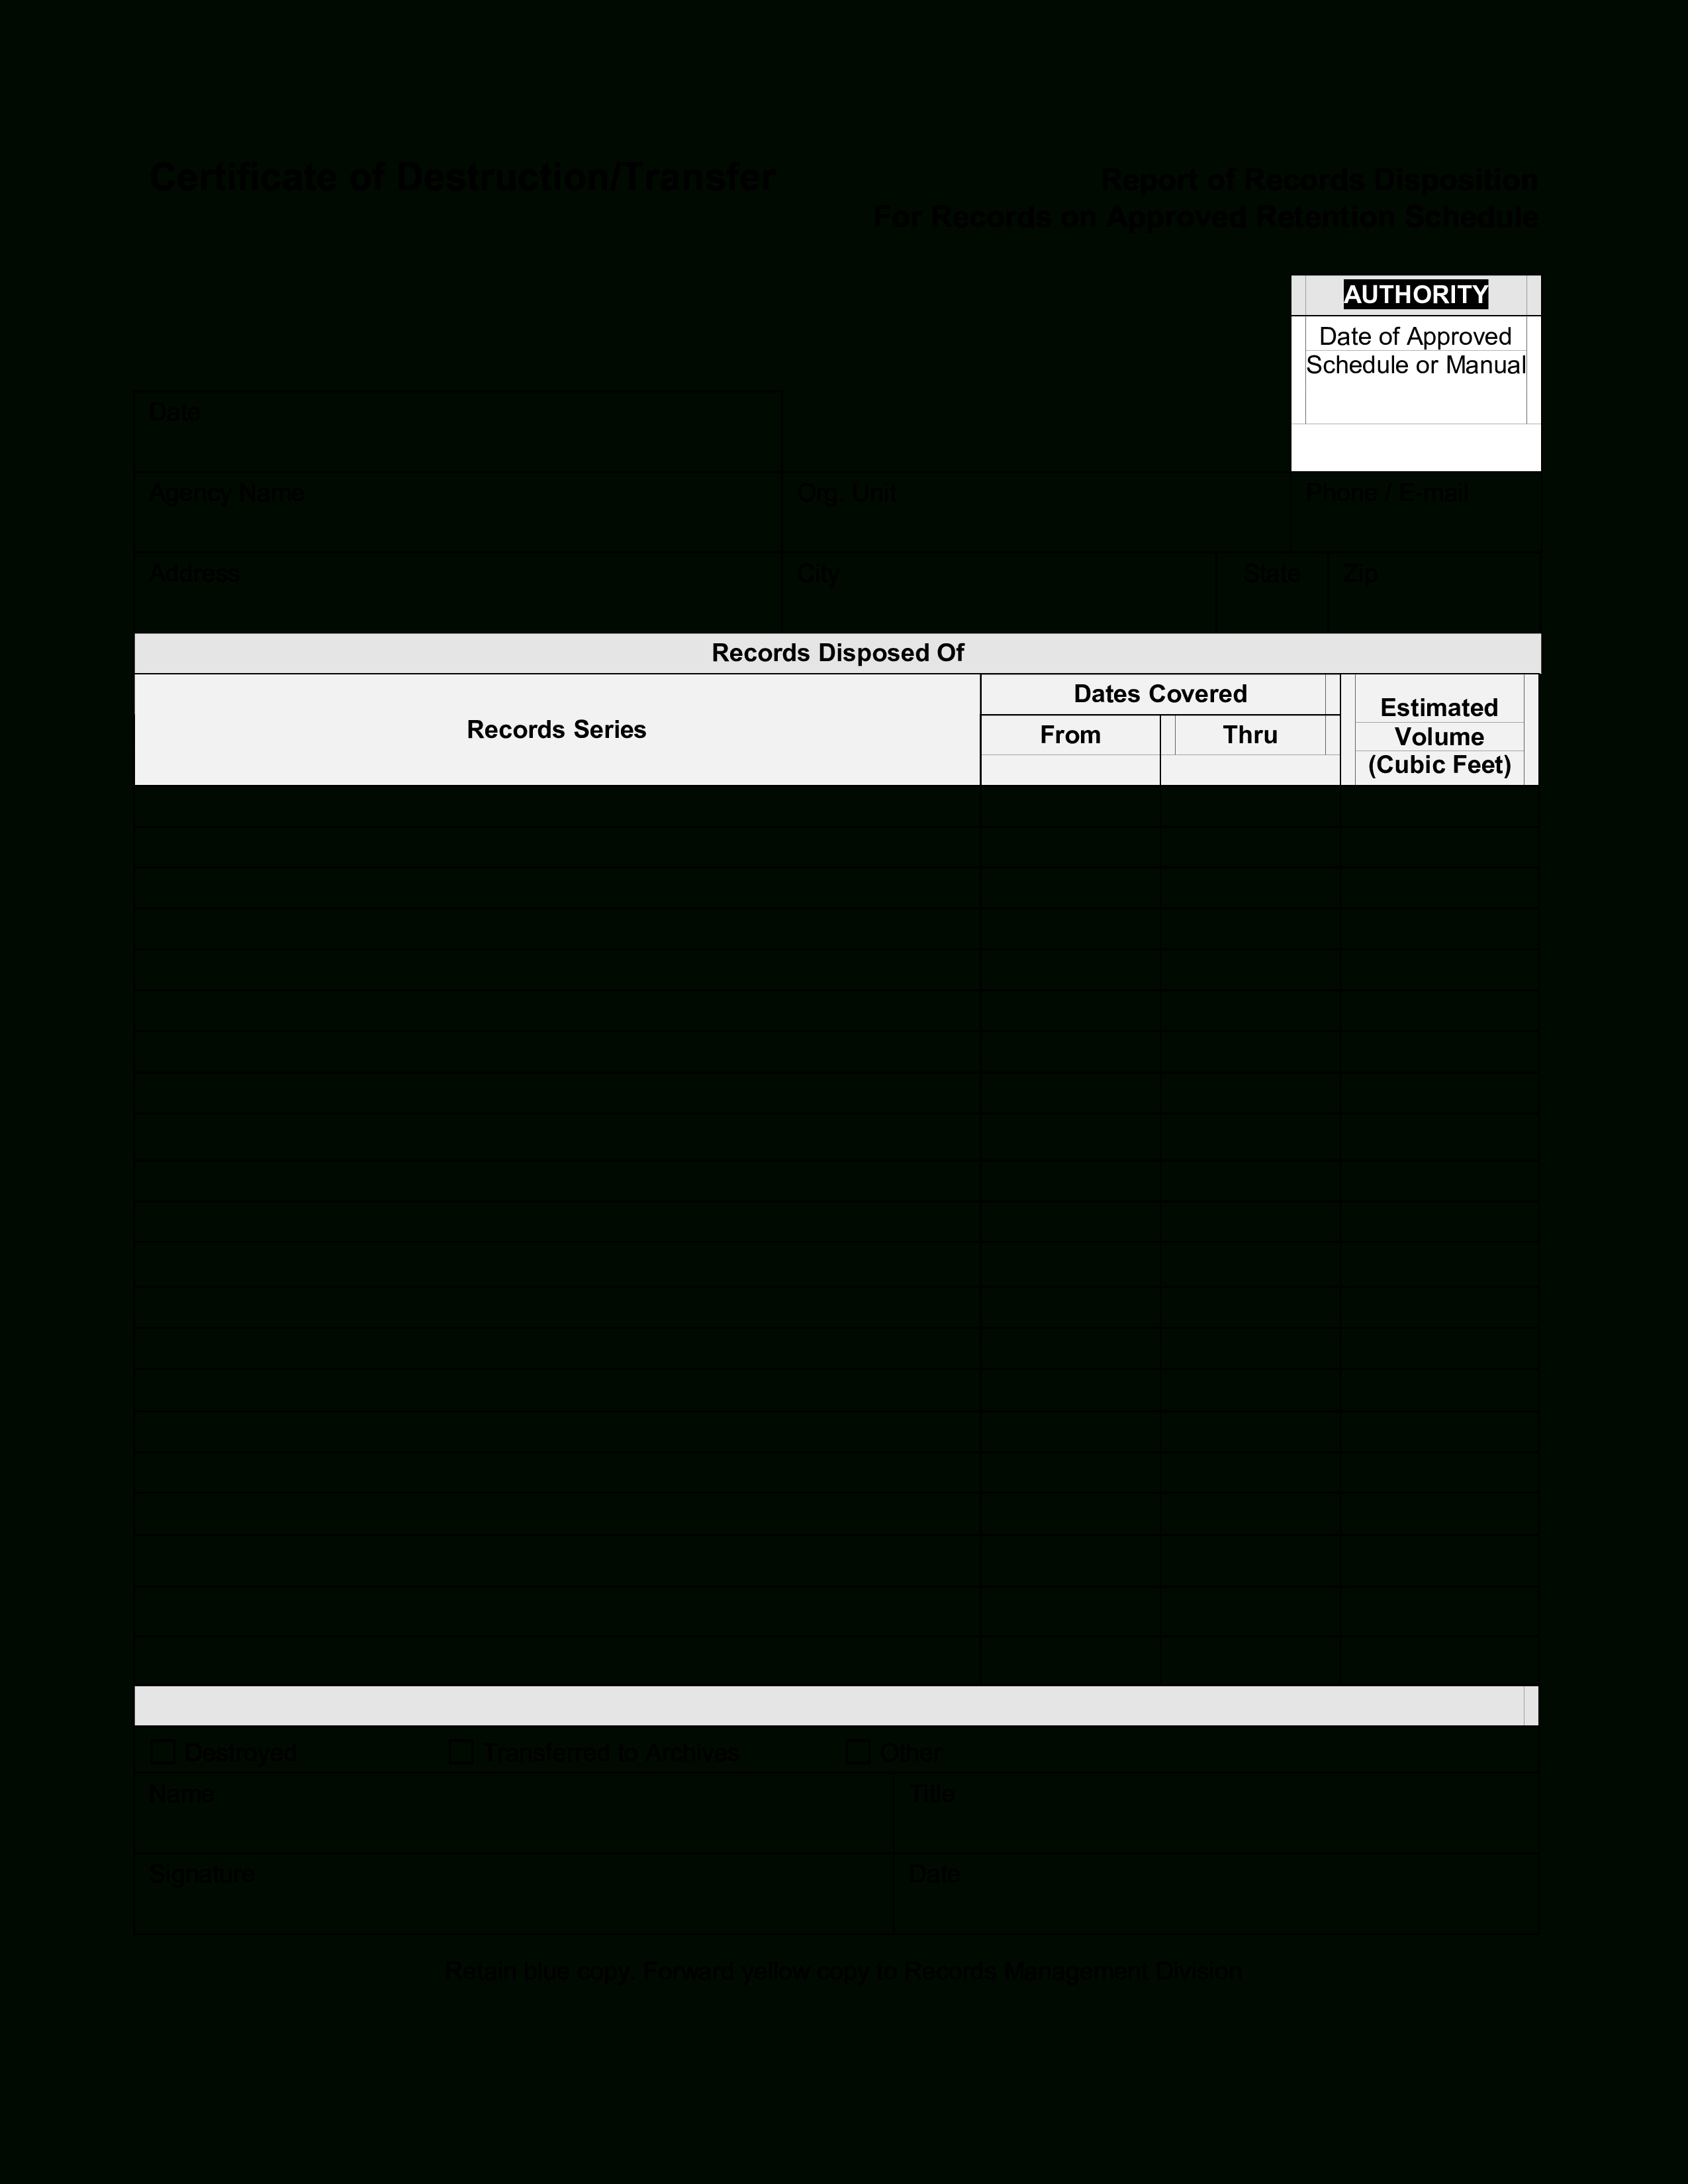 Blank Certificate Of Destruction   Templates At Pertaining To Free Certificate Of Destruction Template